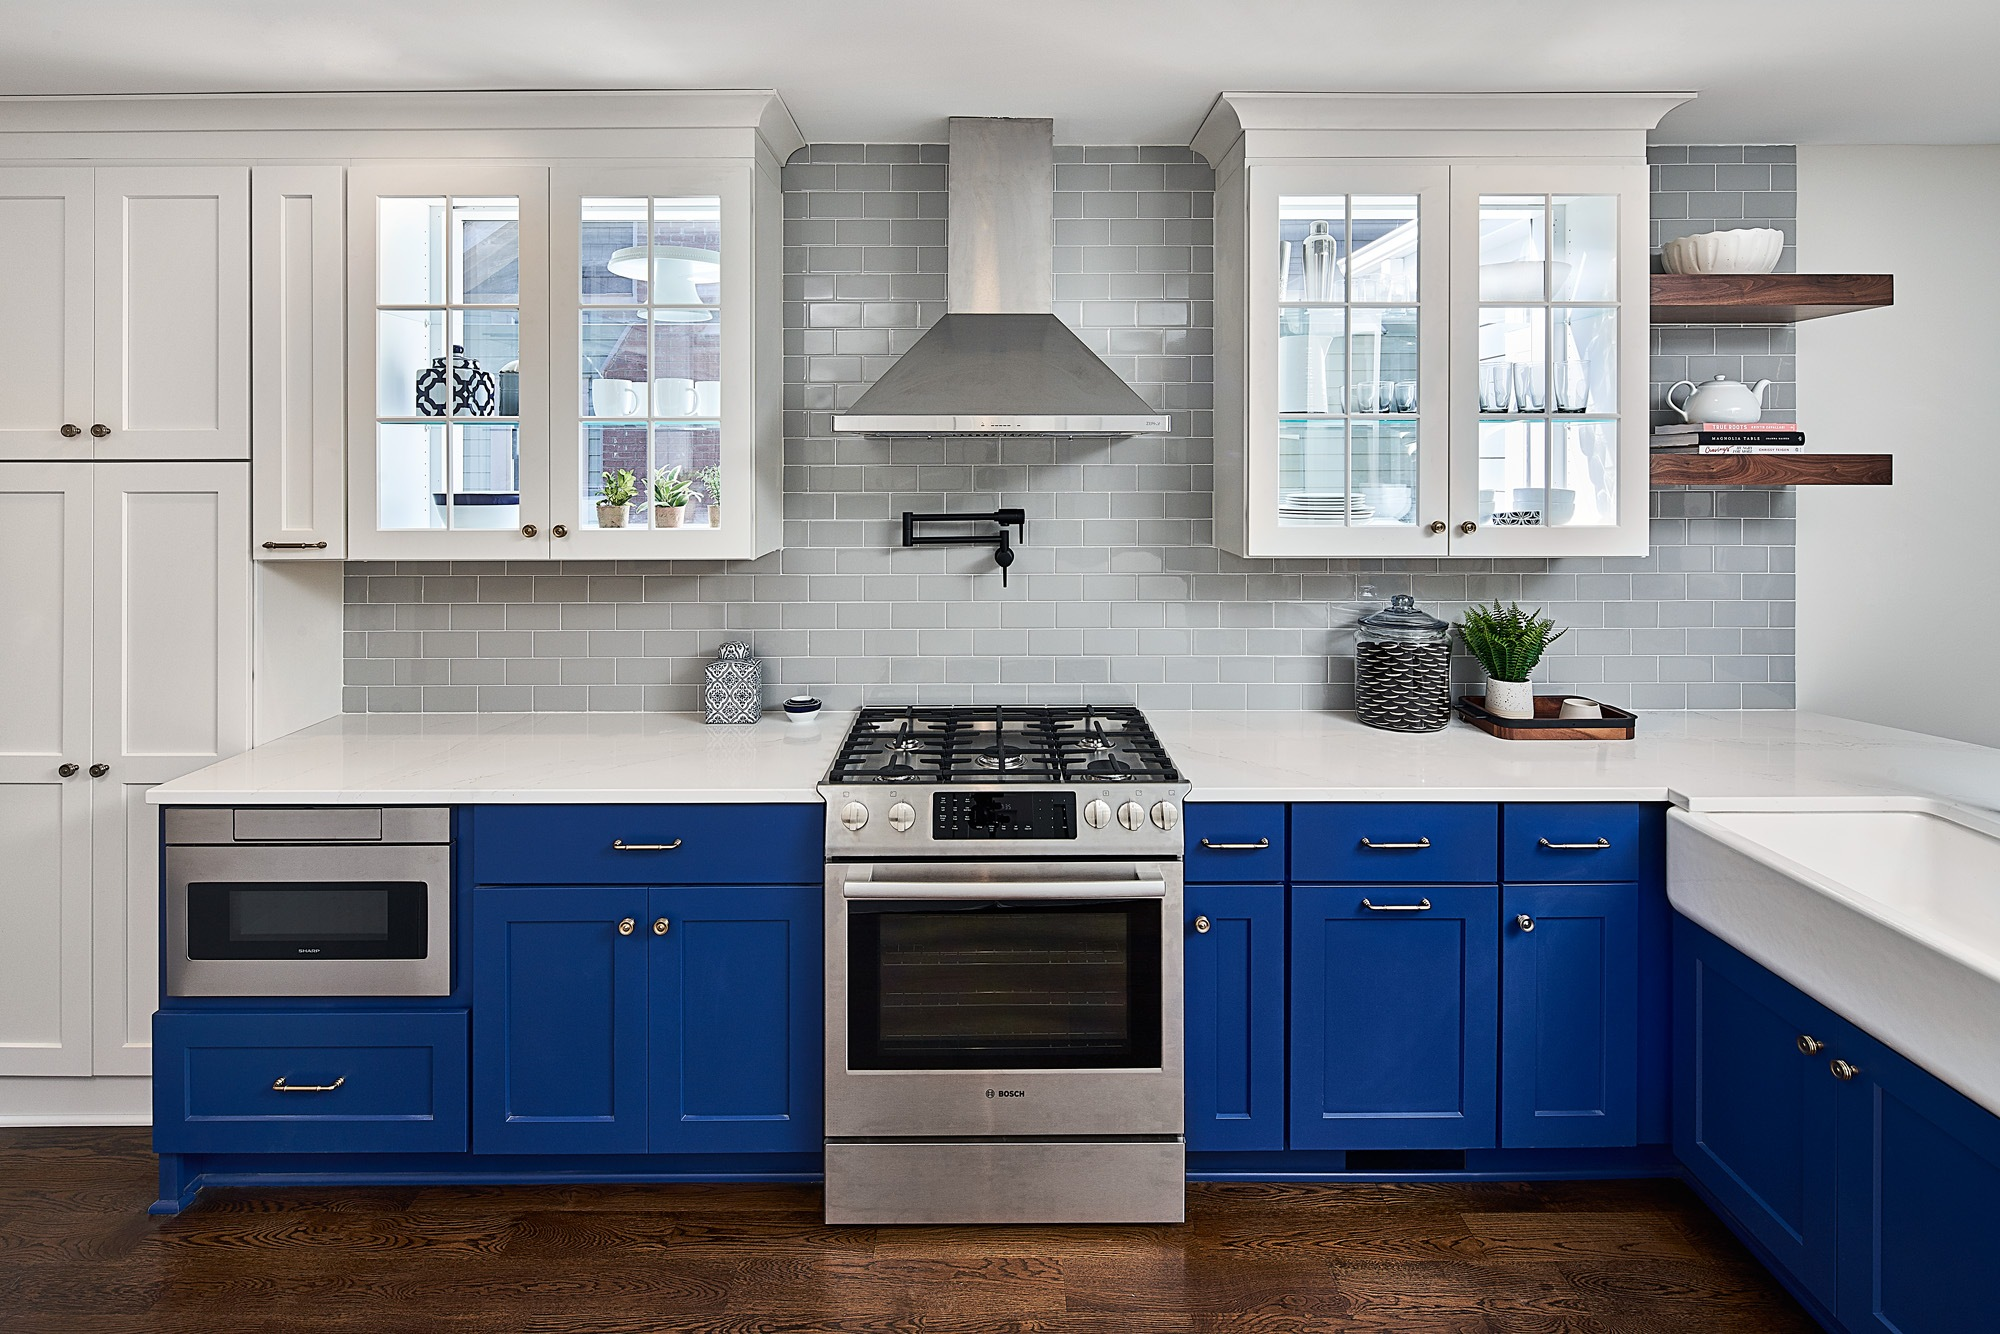 What Are The Different Types Of Gas Stoves Available?